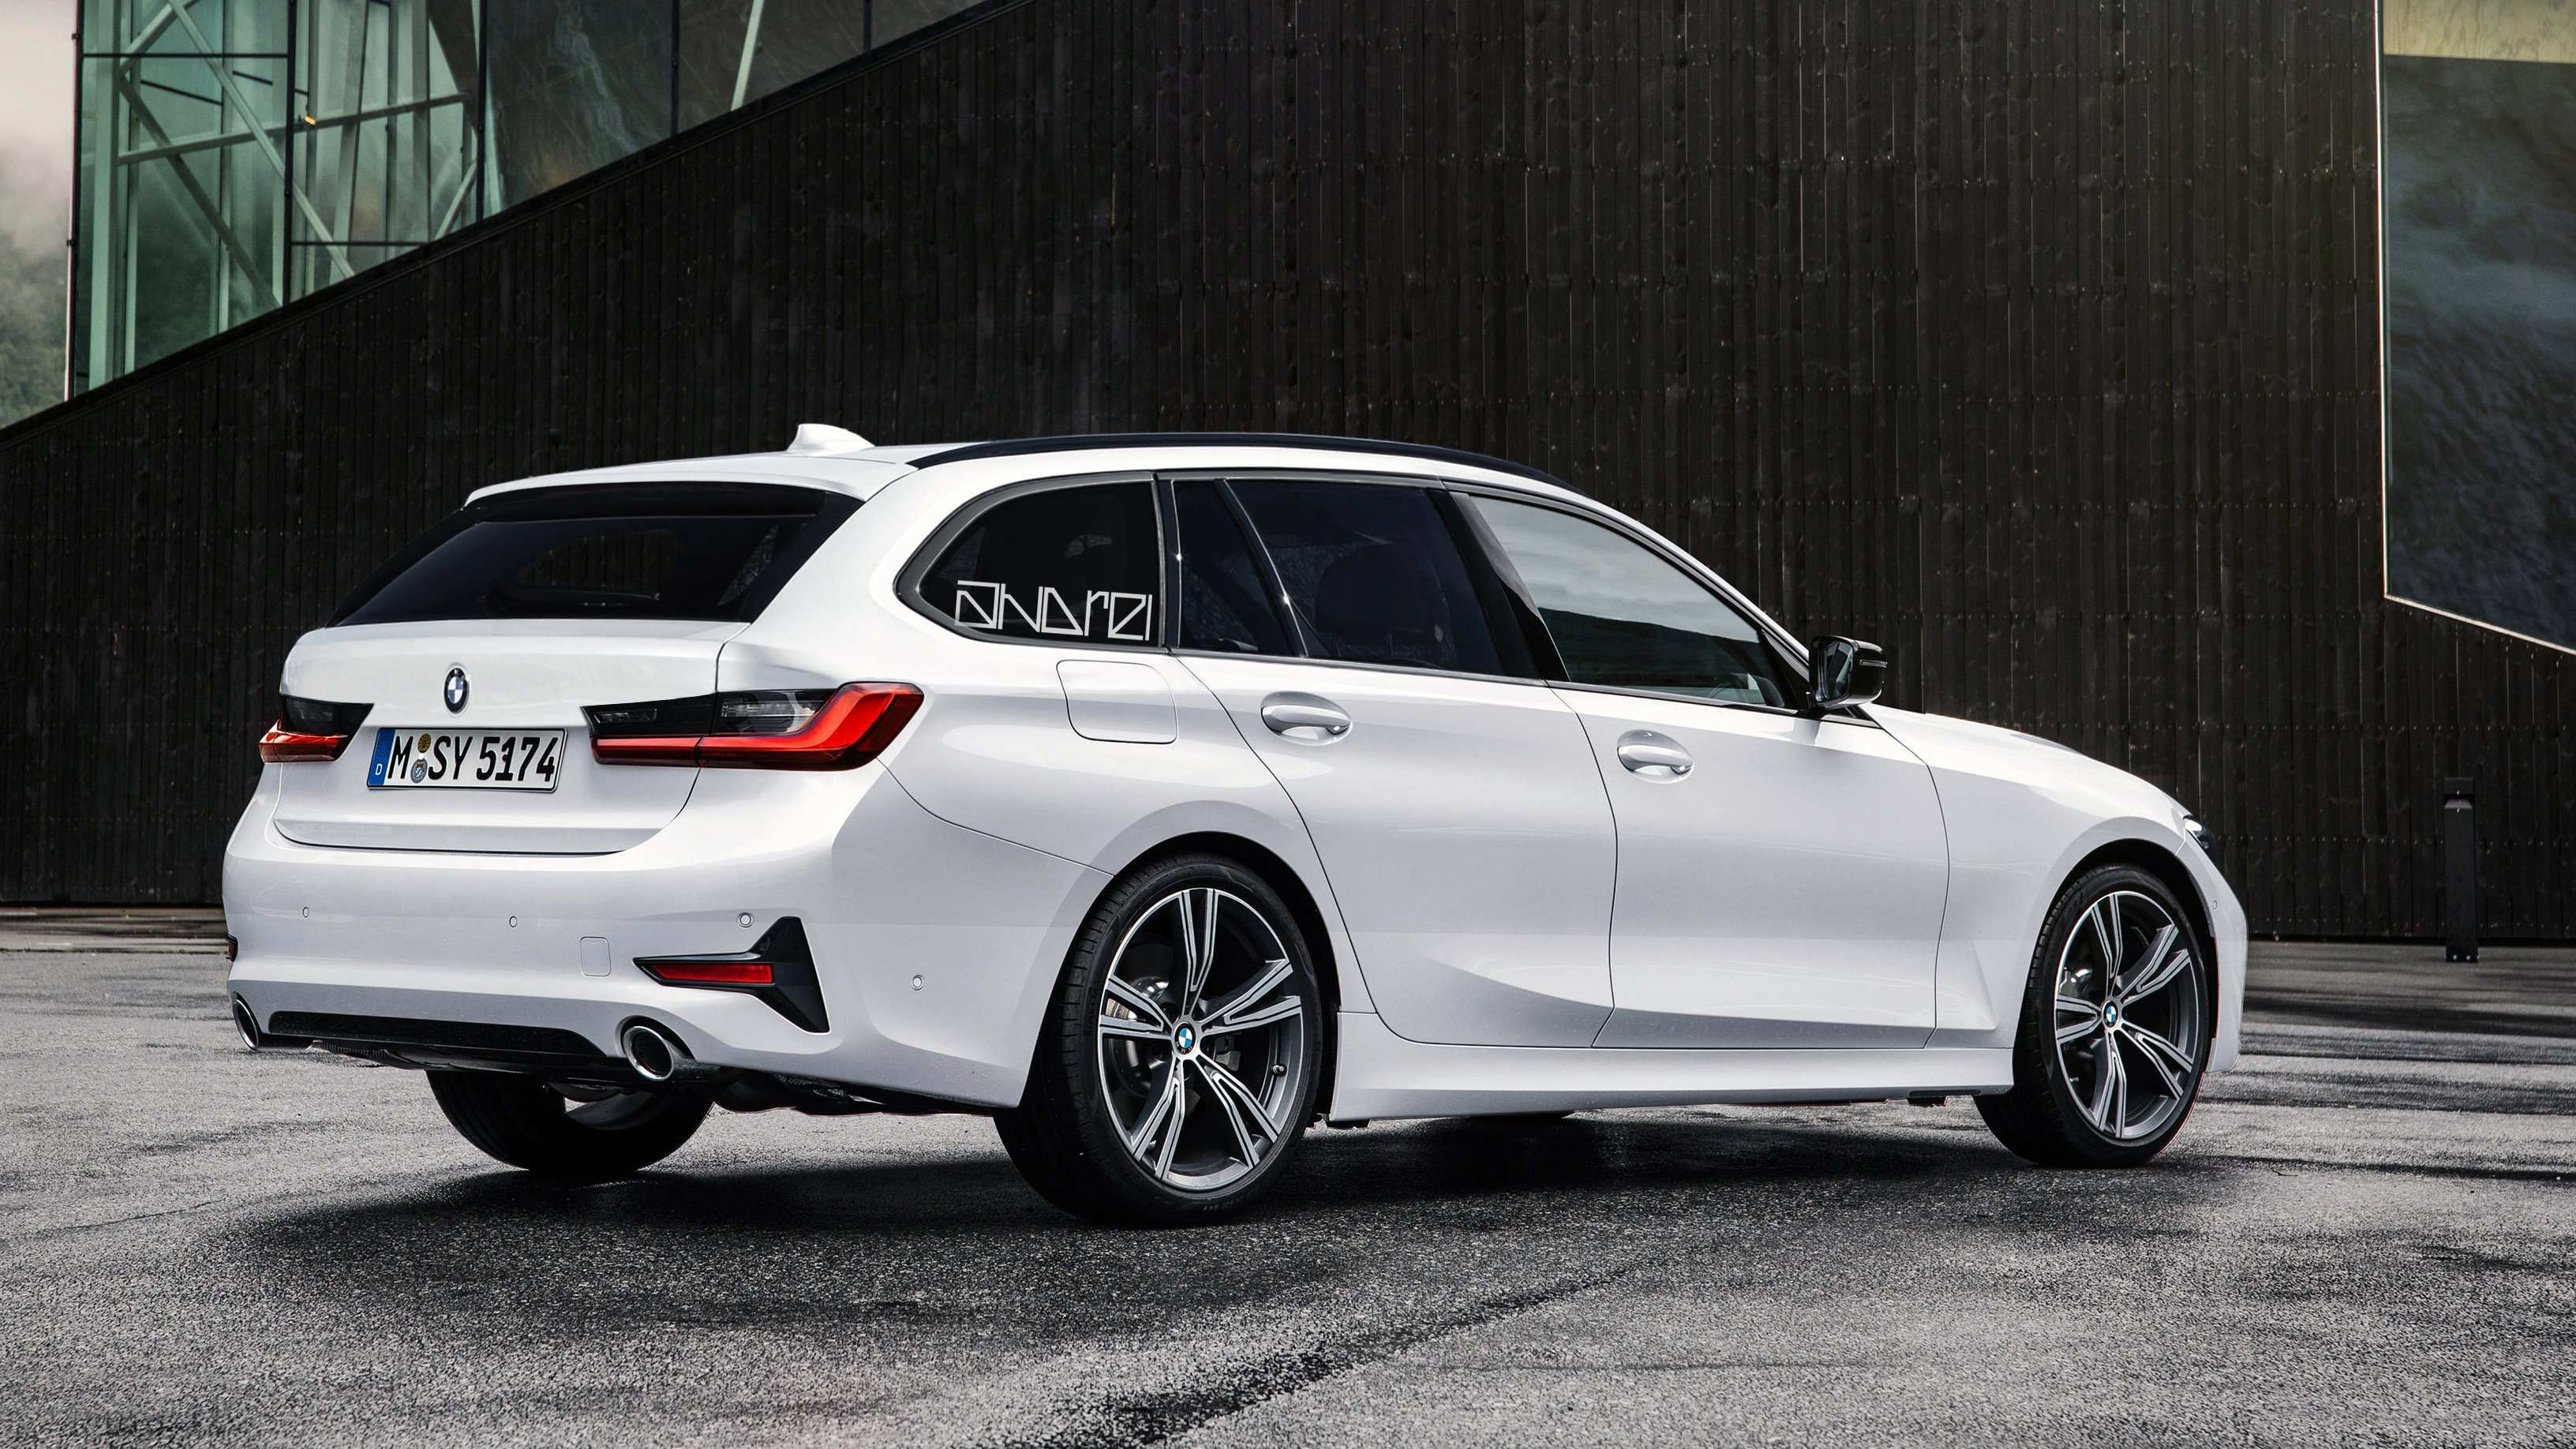 64 A 2019 Bmw F31 Review And Release Date